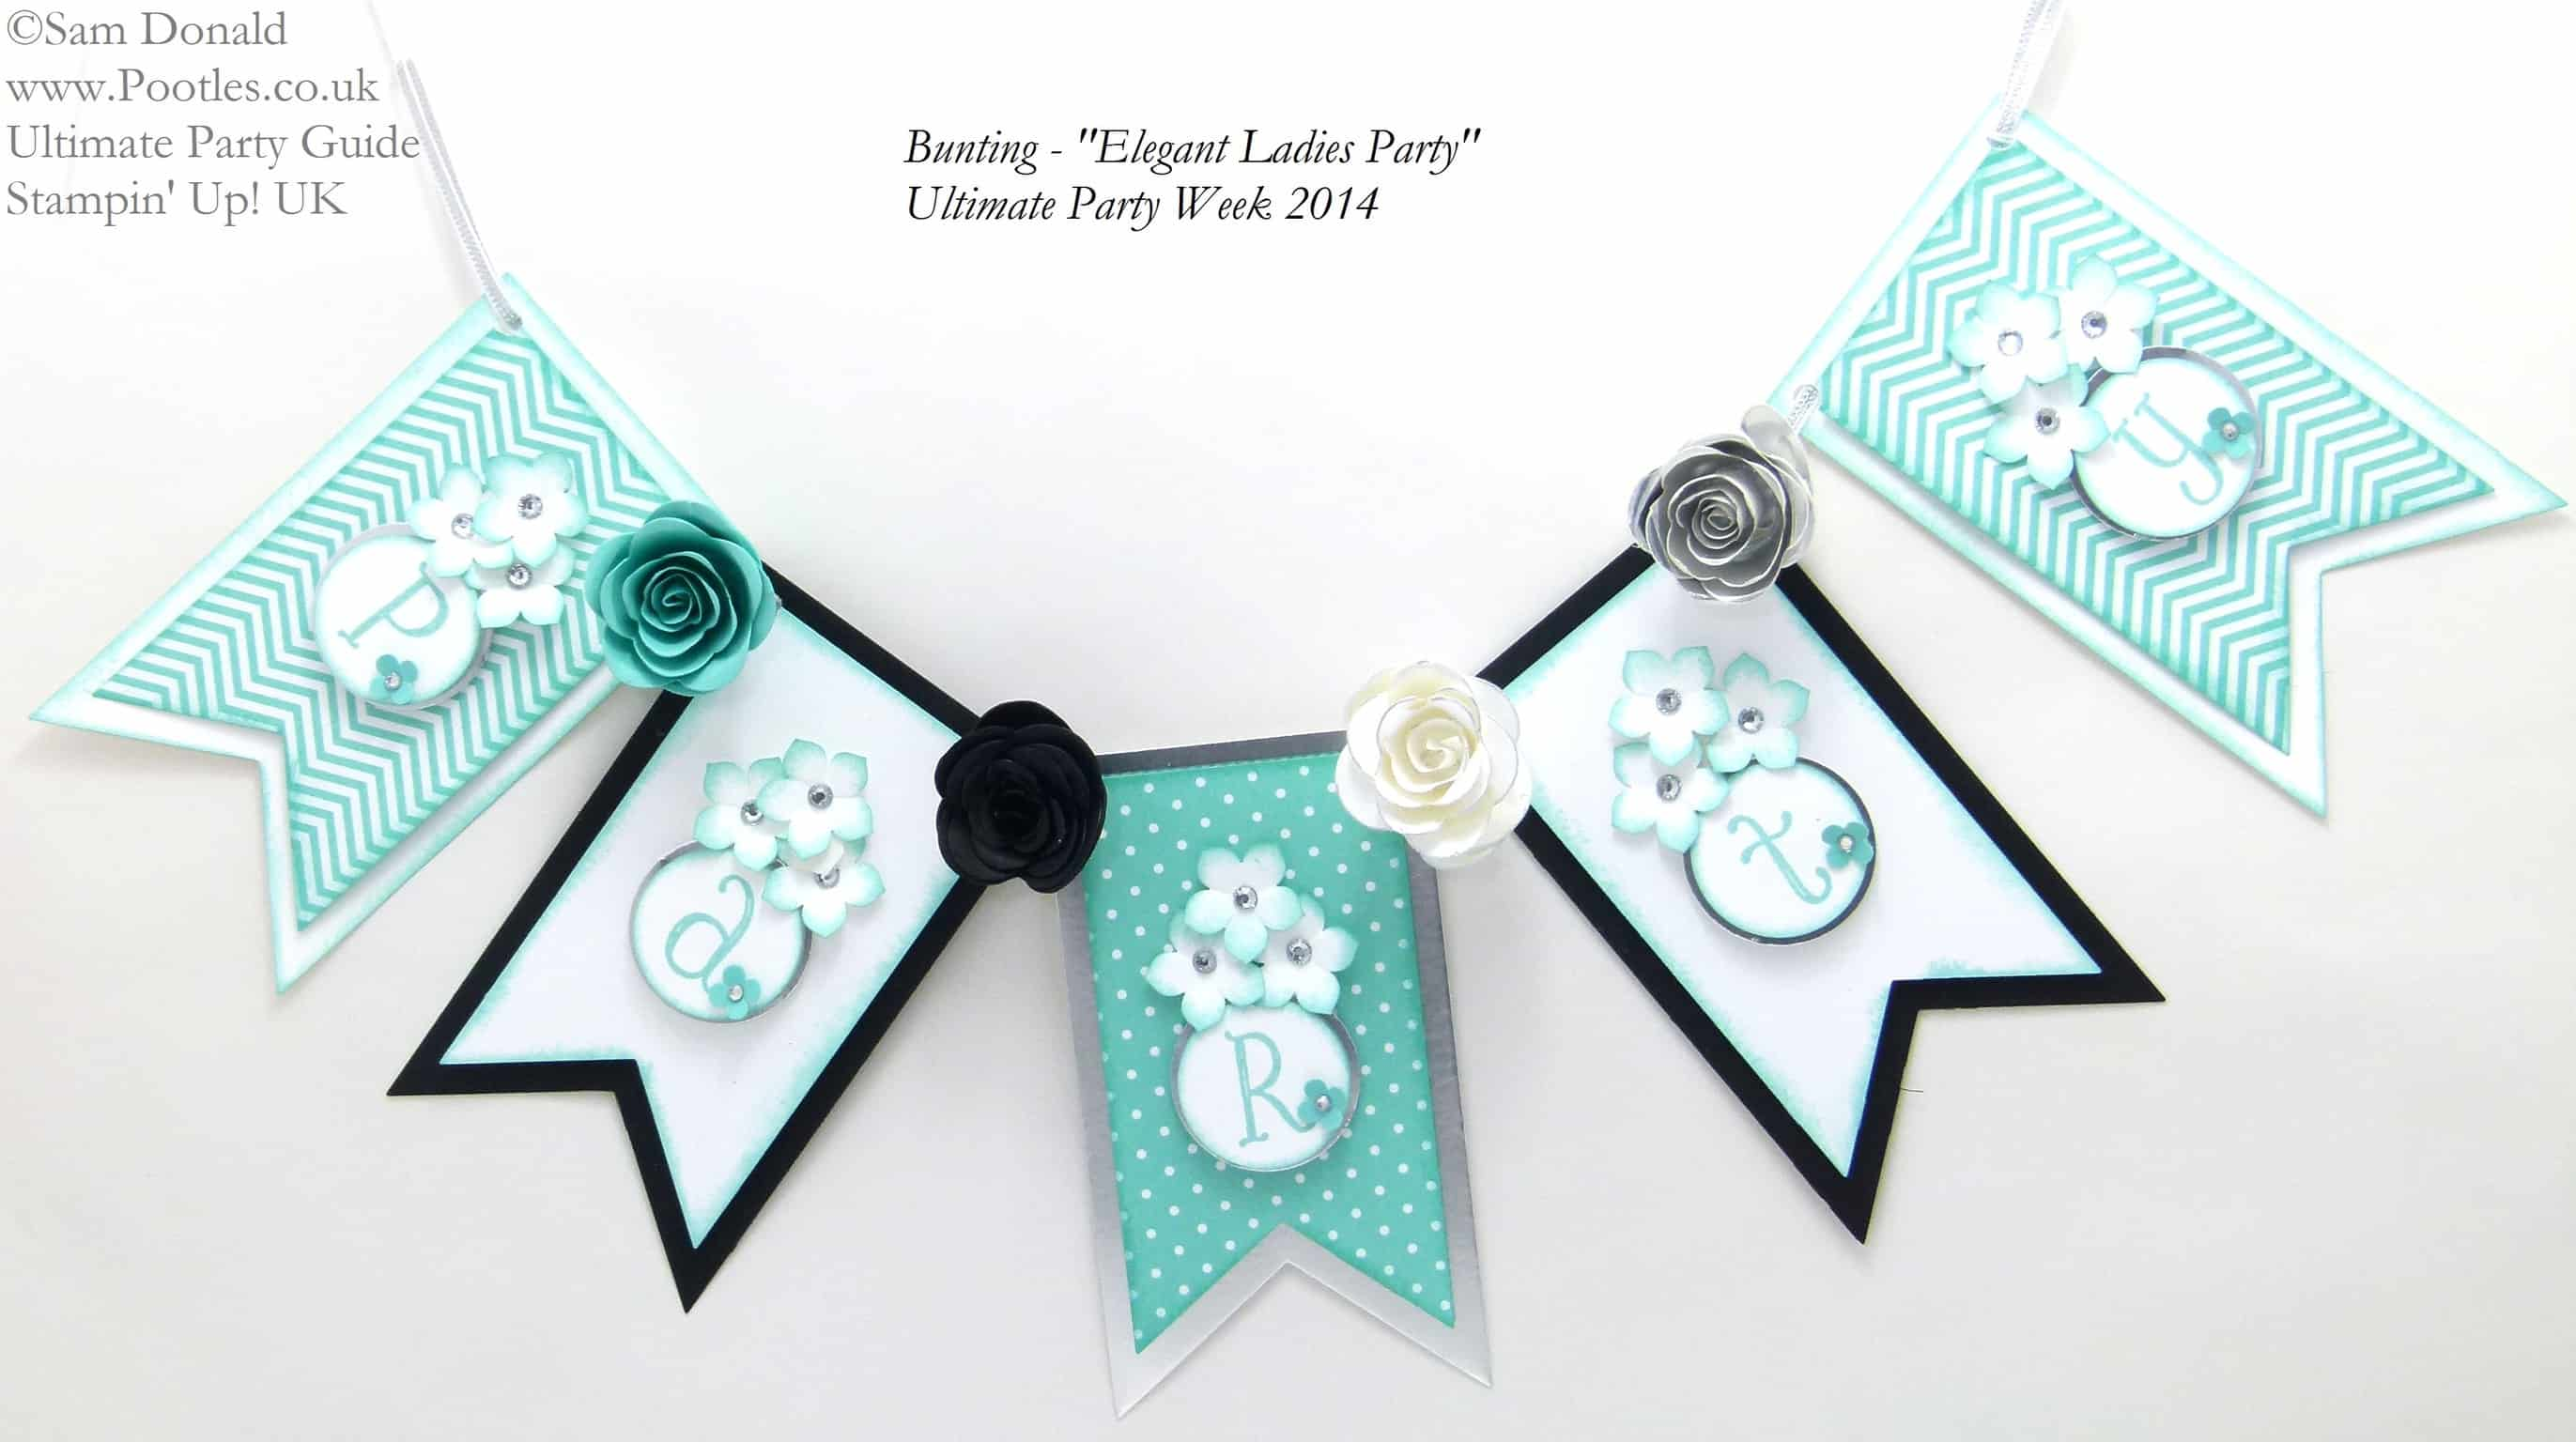 POOTLES Stampin Up UK Ultimate Party Week.  Bunting. ELEGANT LADIES THEME